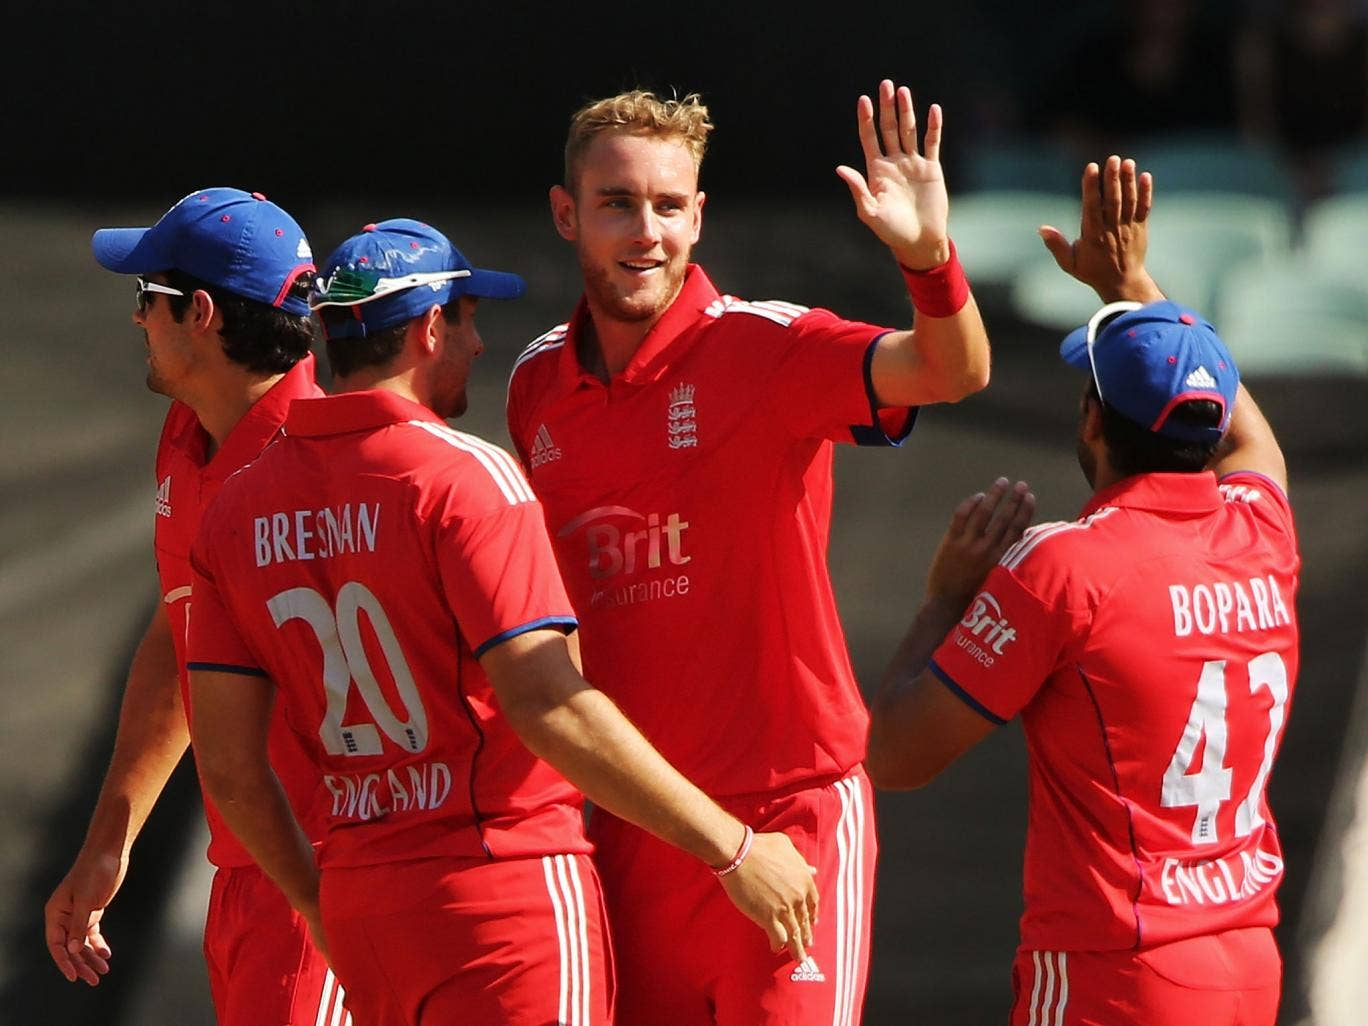 Stuart Broad is hoping for a strong finish to the tour of Australia with victory in the Twenty20 series